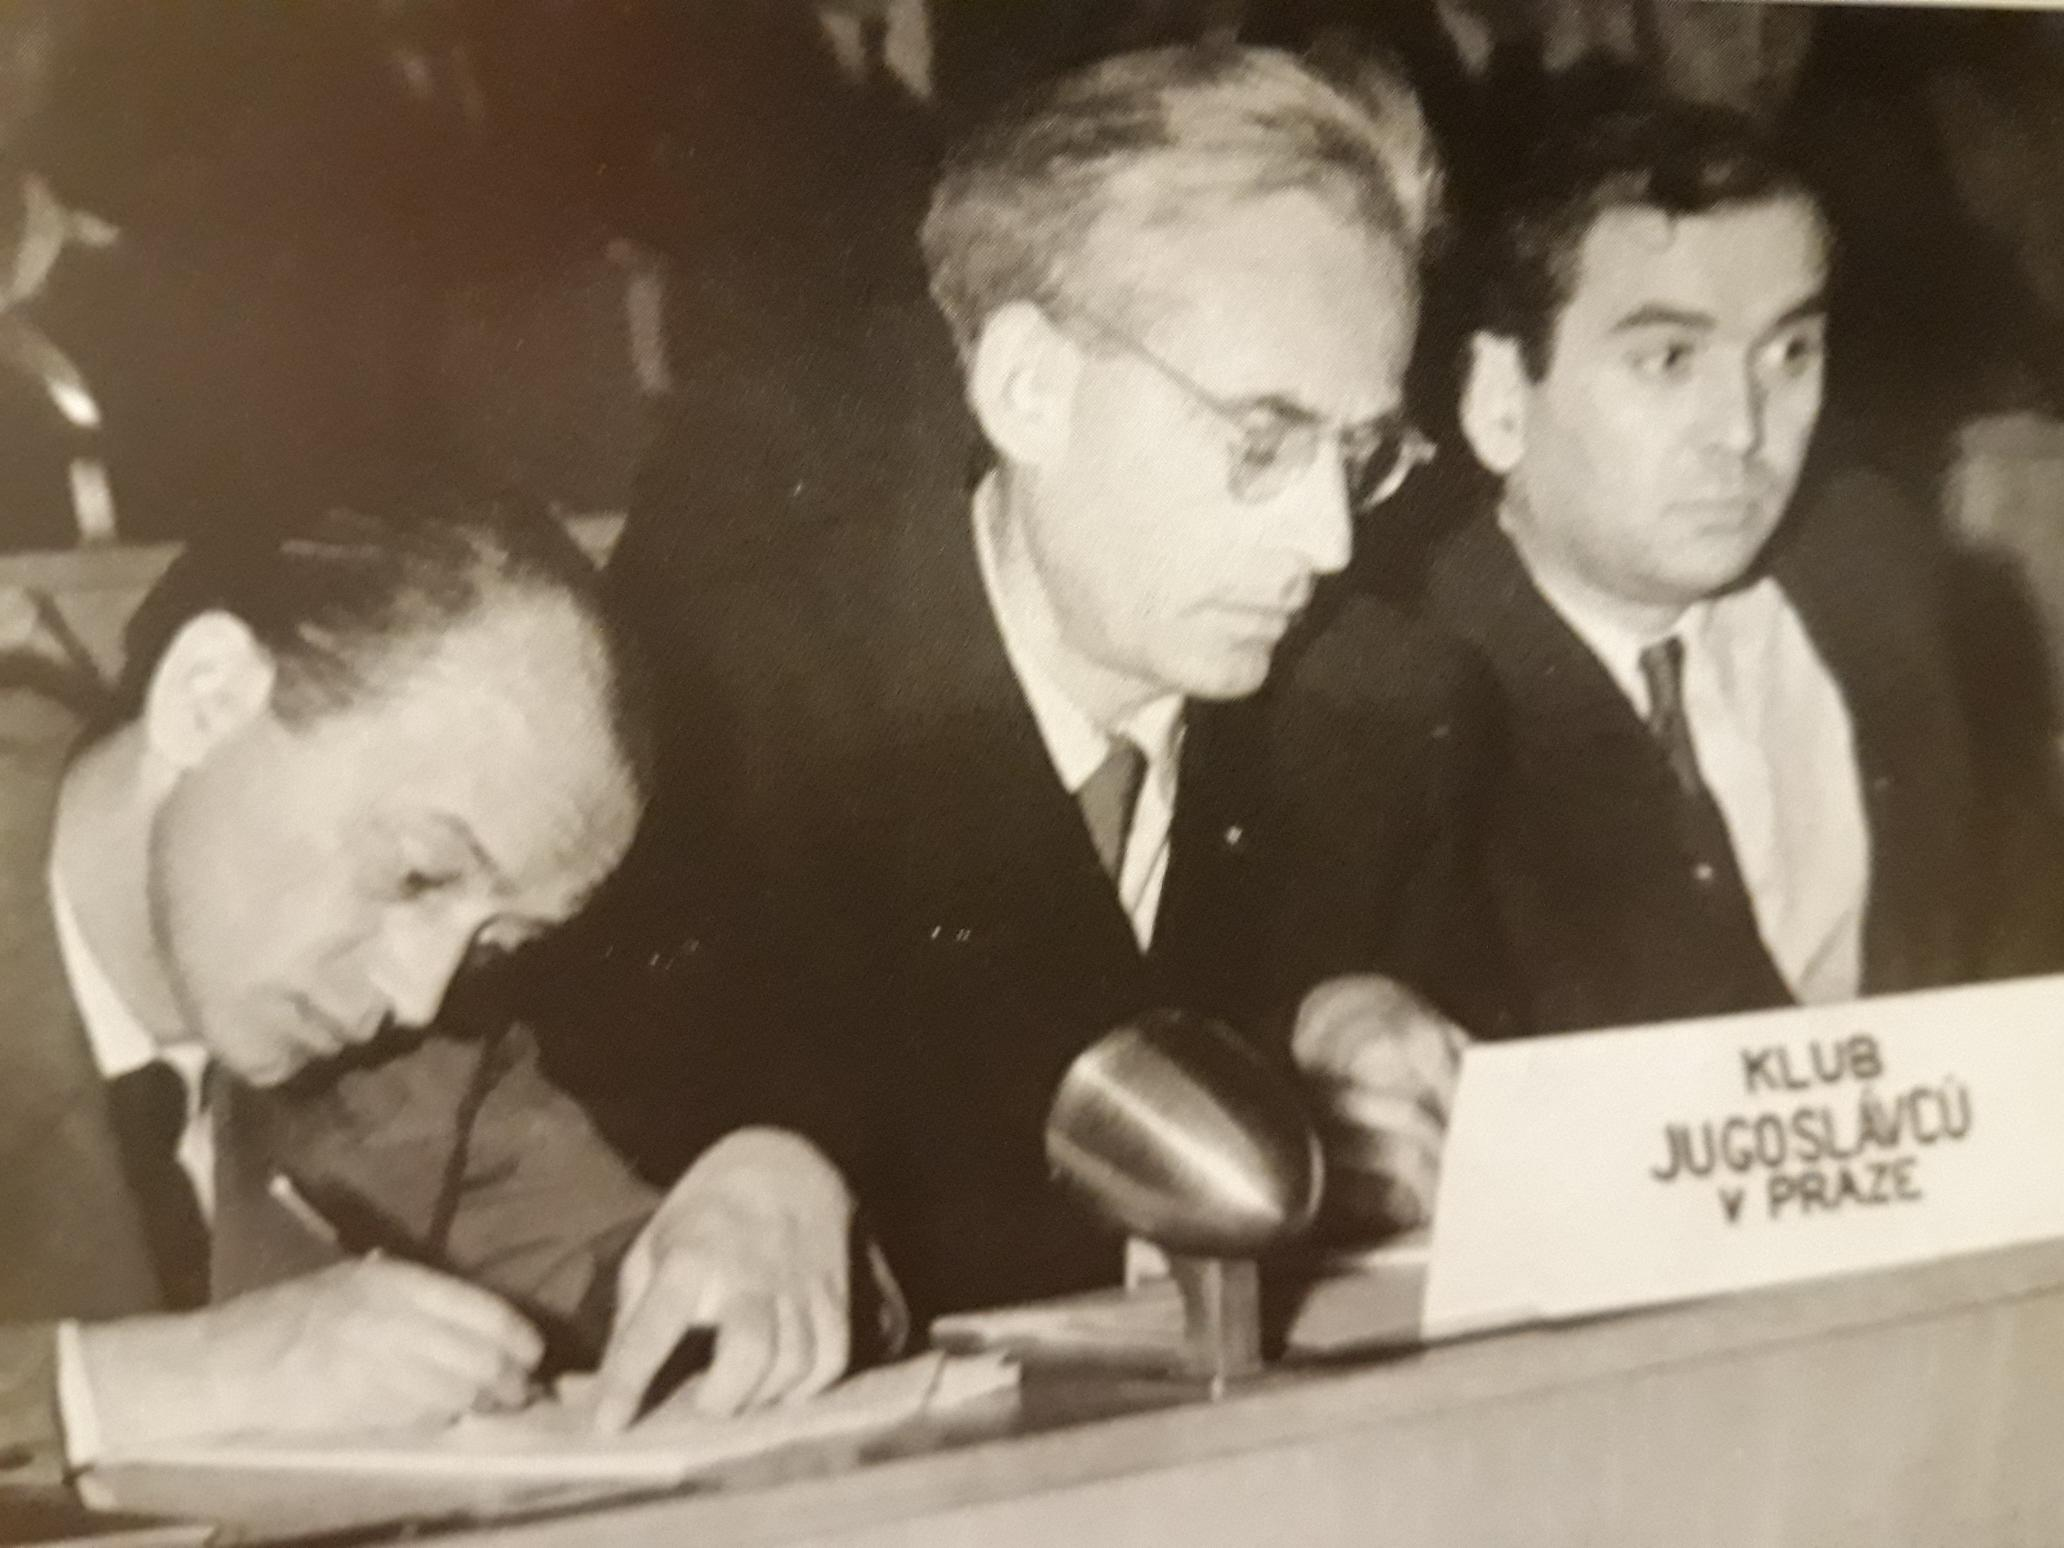 This illustration shows representatives of the Yugoslav Cominformist emigrant group in Czechoslovakia – Slobodan Ivanović, Teodor Balk and Milutin Rajković – at the Prague meeting of the Congress of Peace Defenders in April 1949.